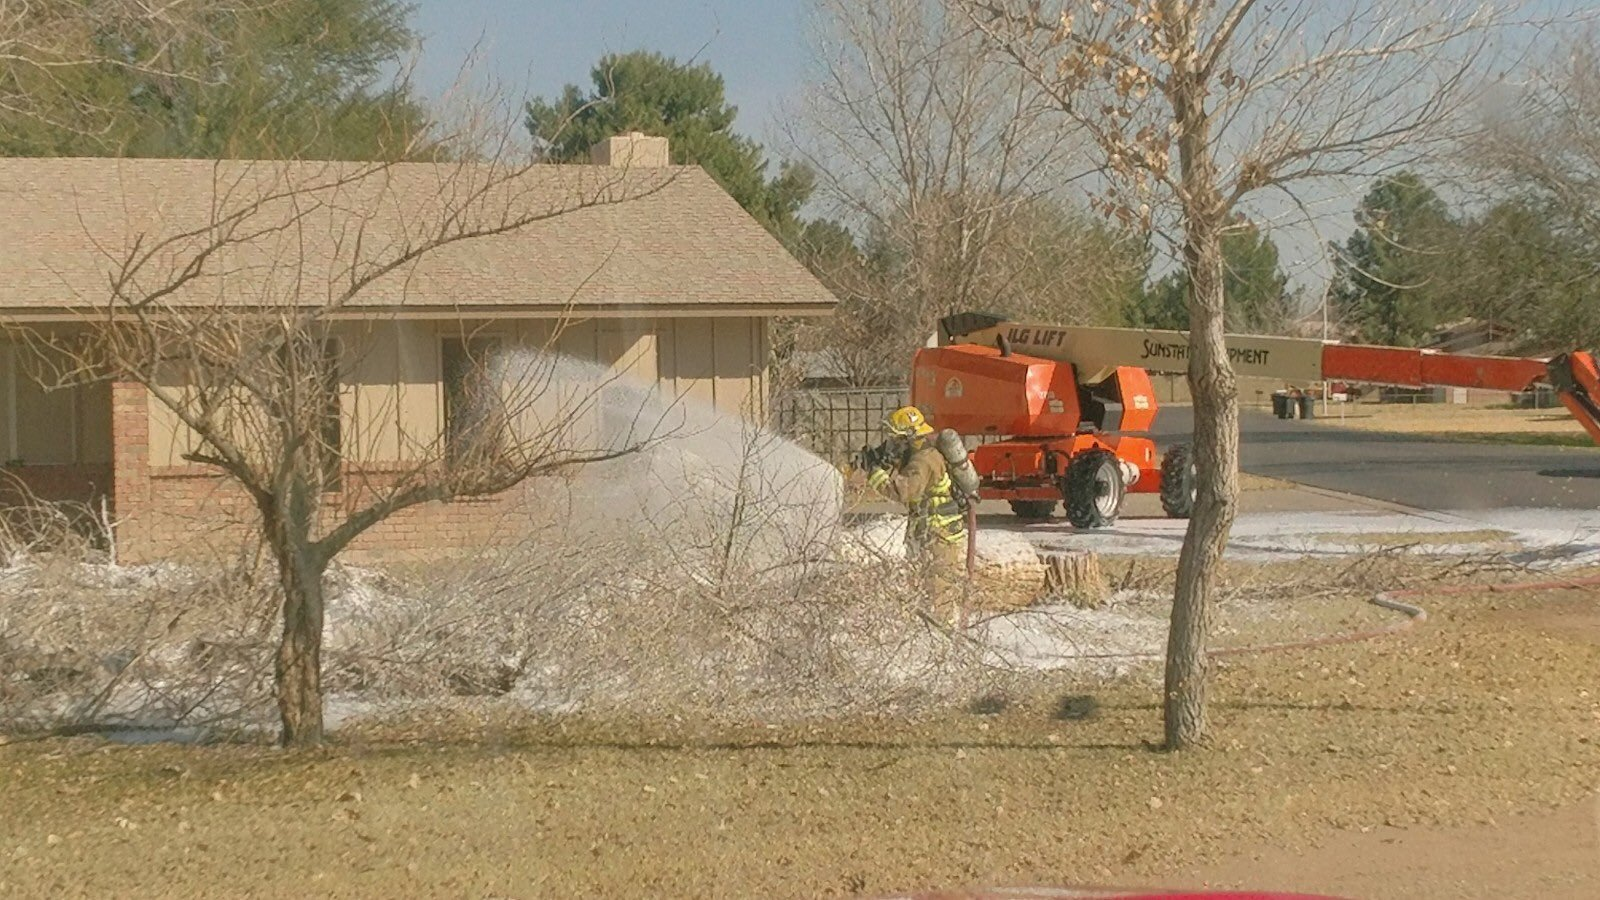 Tree cutting crew in Chandler attacked by bees Friday. 26 Jan. 2018 (Source: Chandler Fire and Medical Dept.)